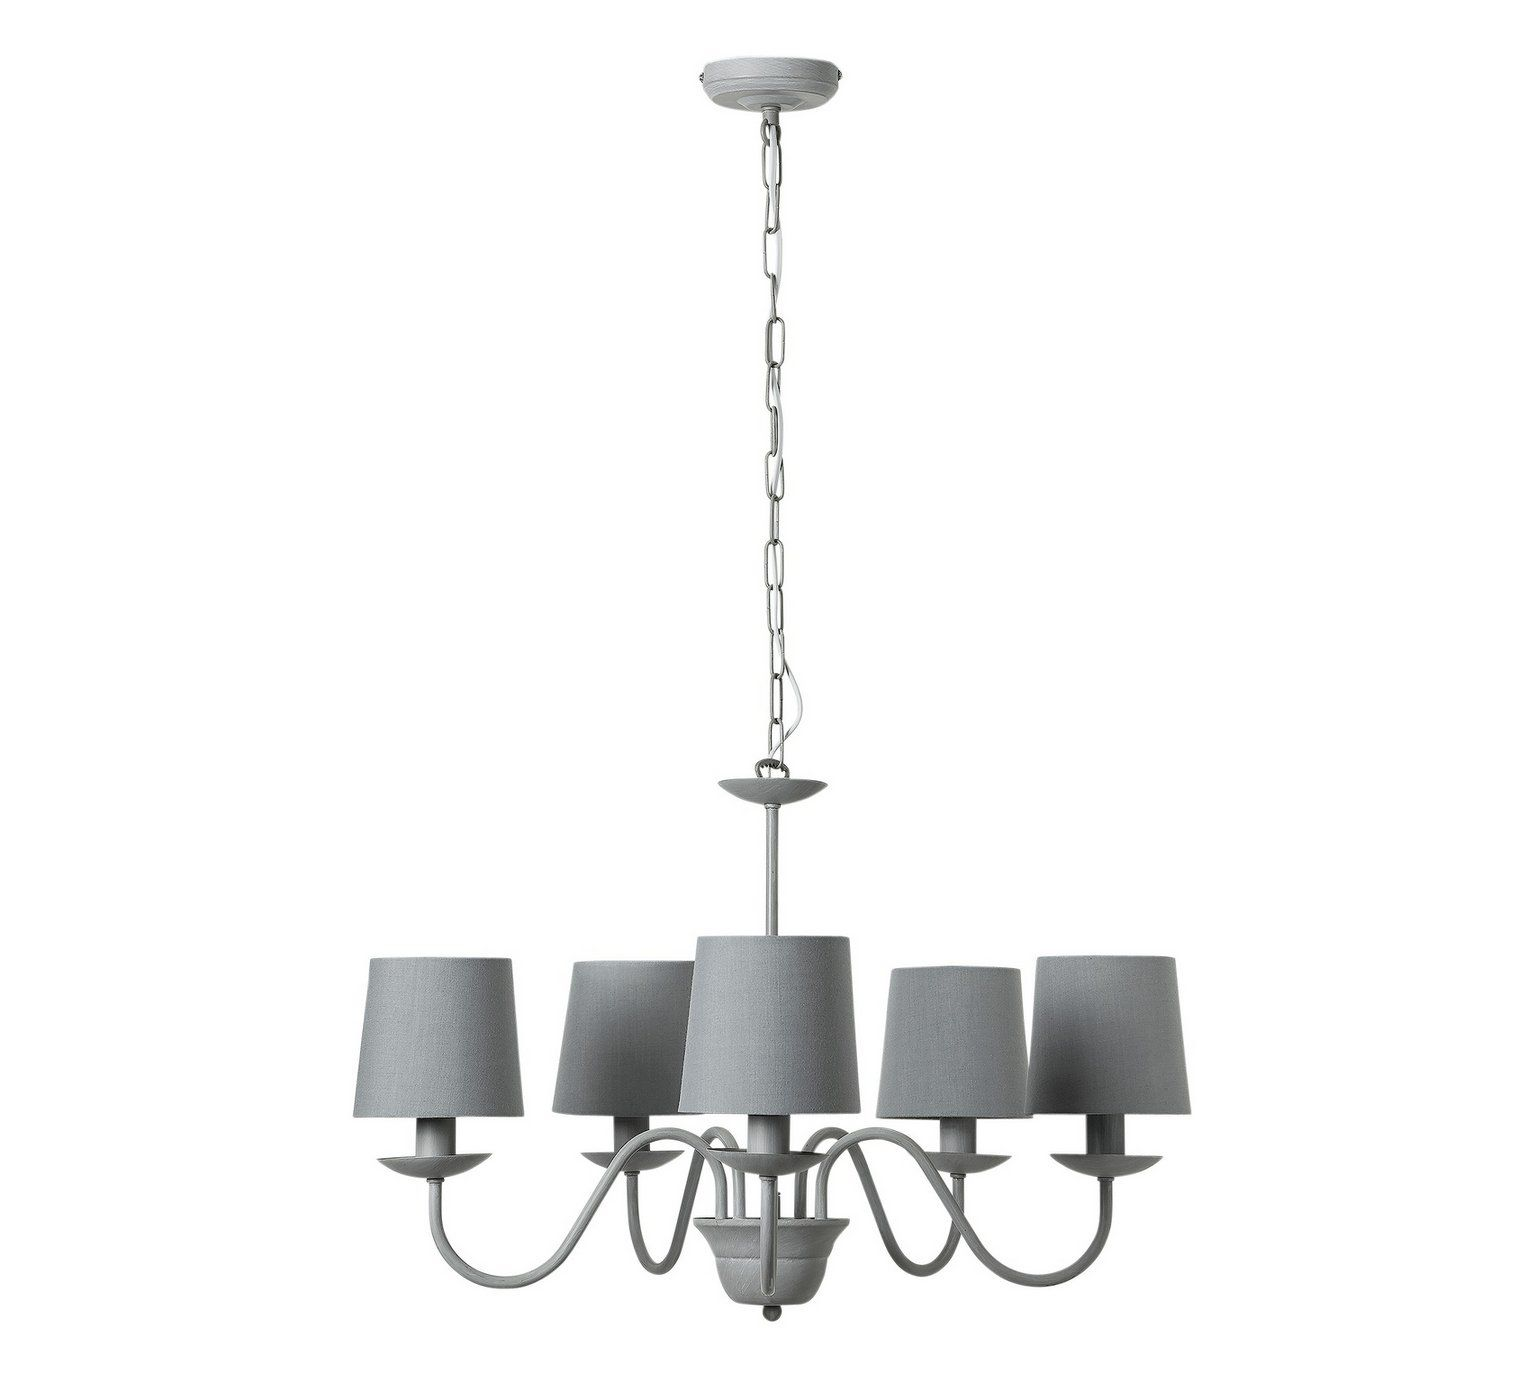 Heart Of House Aster 5 Light Chandelier Ceiling Grey At Argos Co